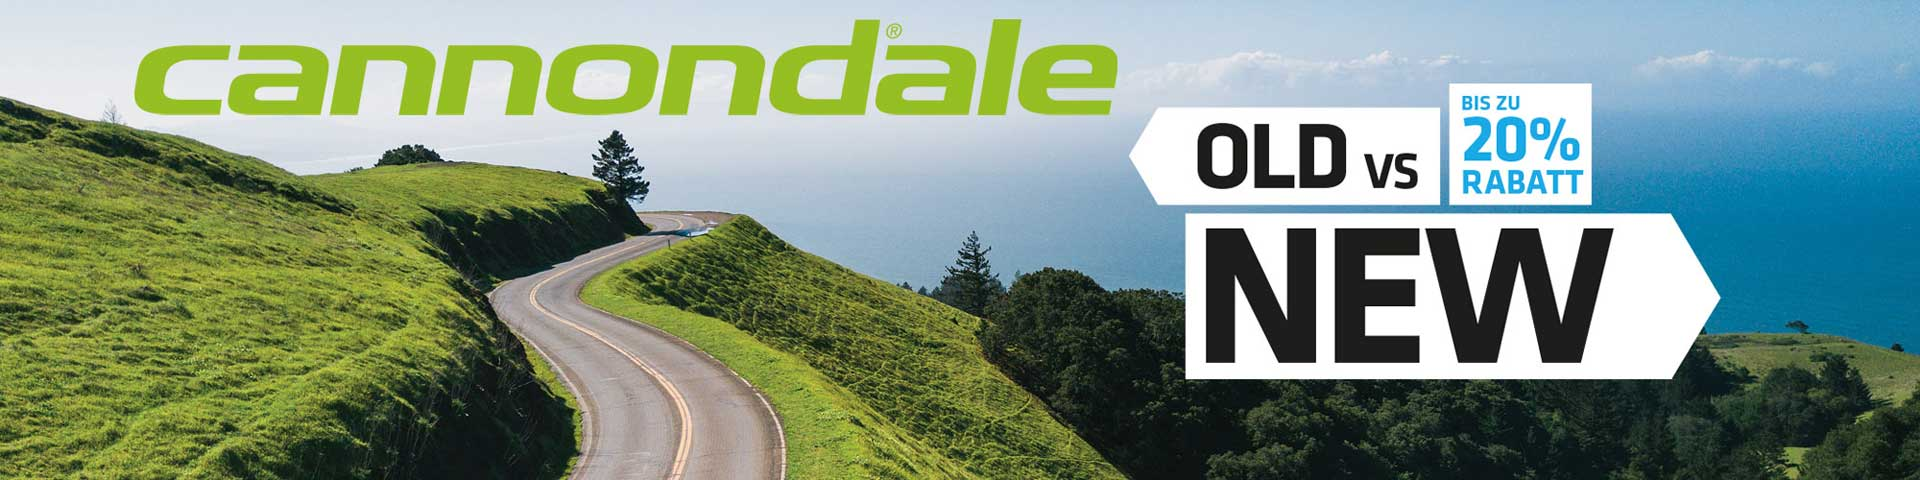 Cannondale Bike Shop